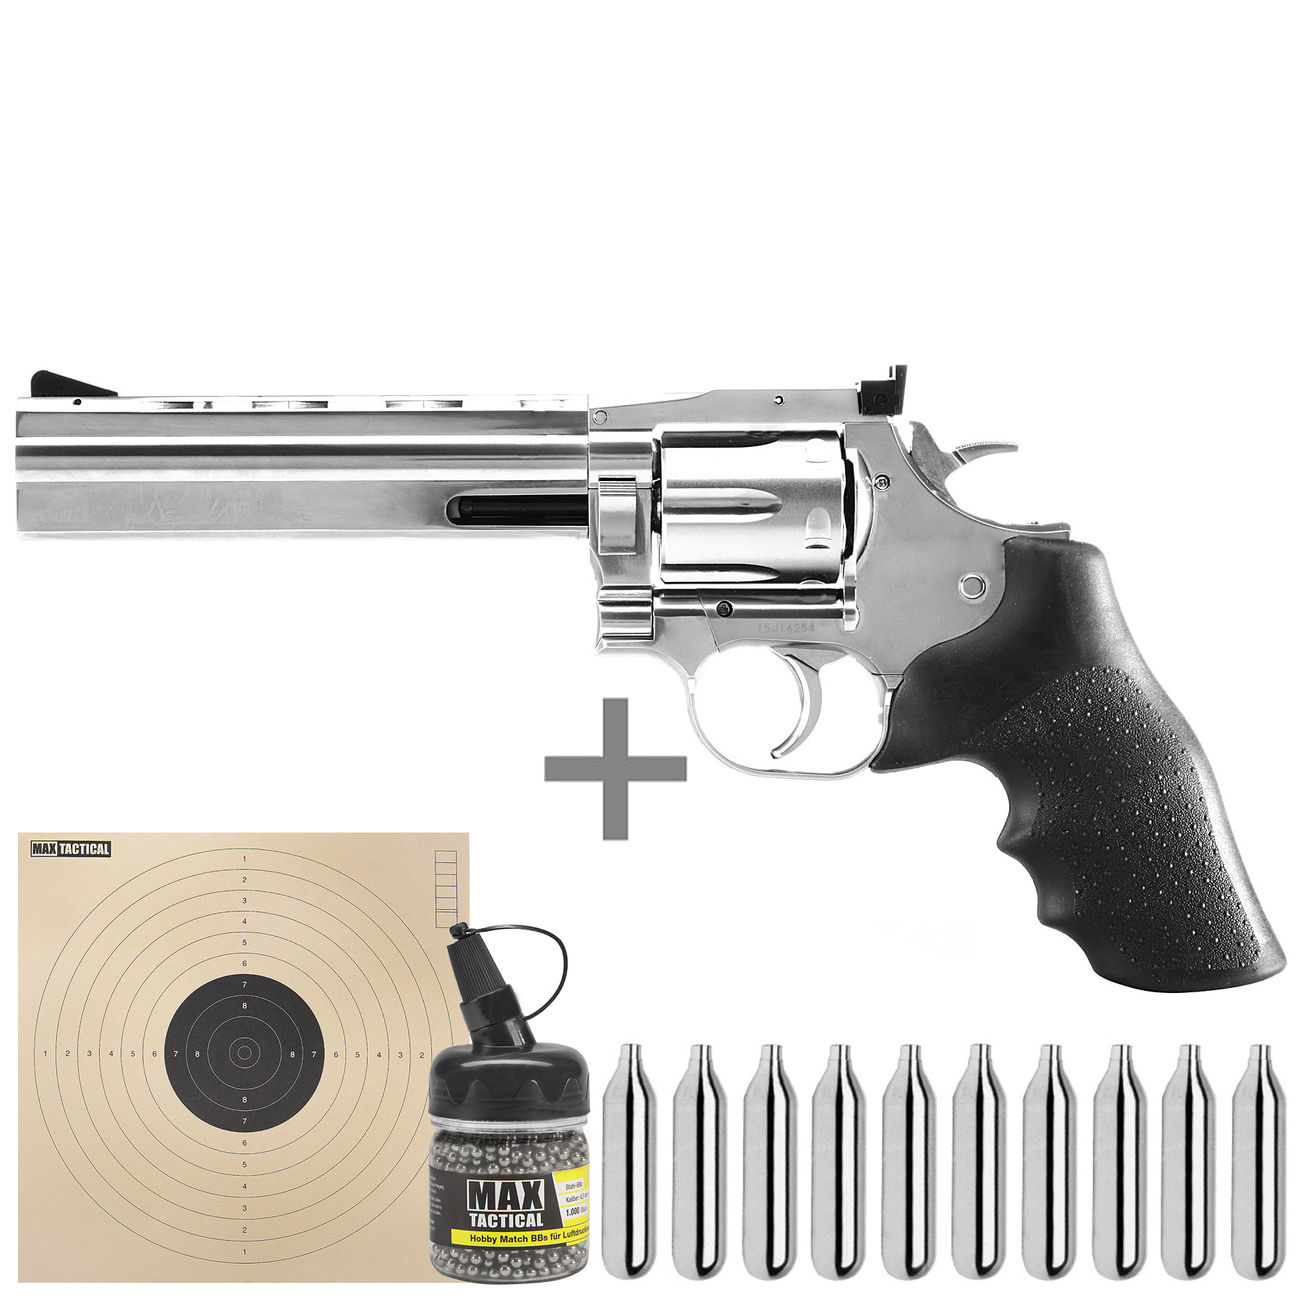 ASG Dan Wesson 715 CO2 Revolver 6 Zoll Kal. 4,5mm BB Starterset 0